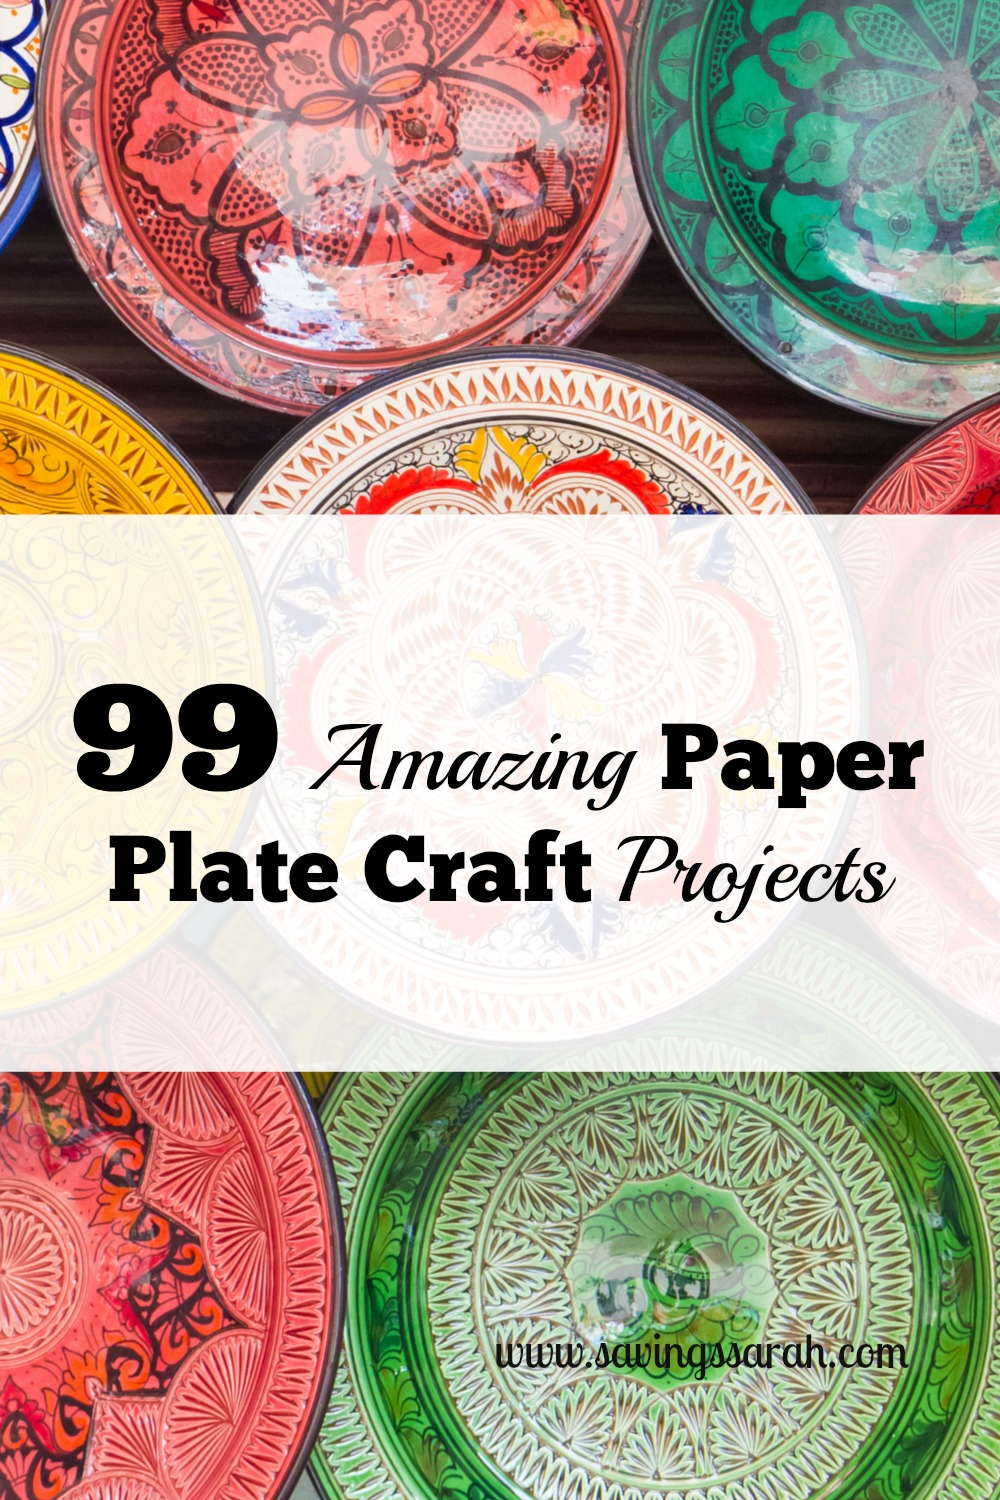 sc 1 st  Earning and Saving with Sarah & 99 Amazing Paper Plate Craft Projects - Earning and Saving with Sarah